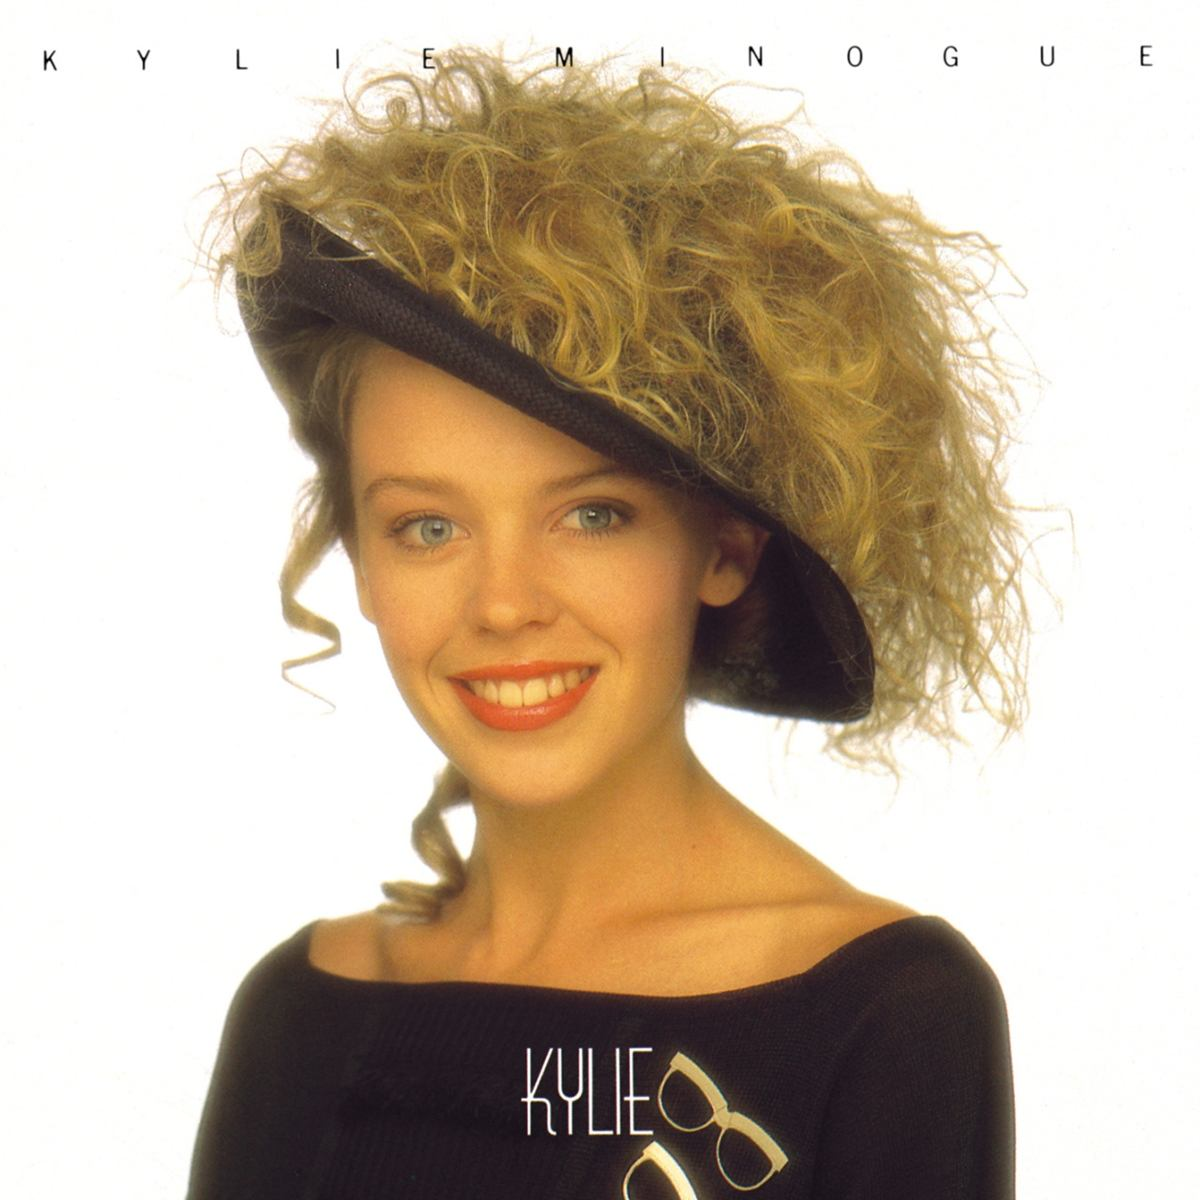 1 1 12 Pop Music Albums All 80s Girls Owned